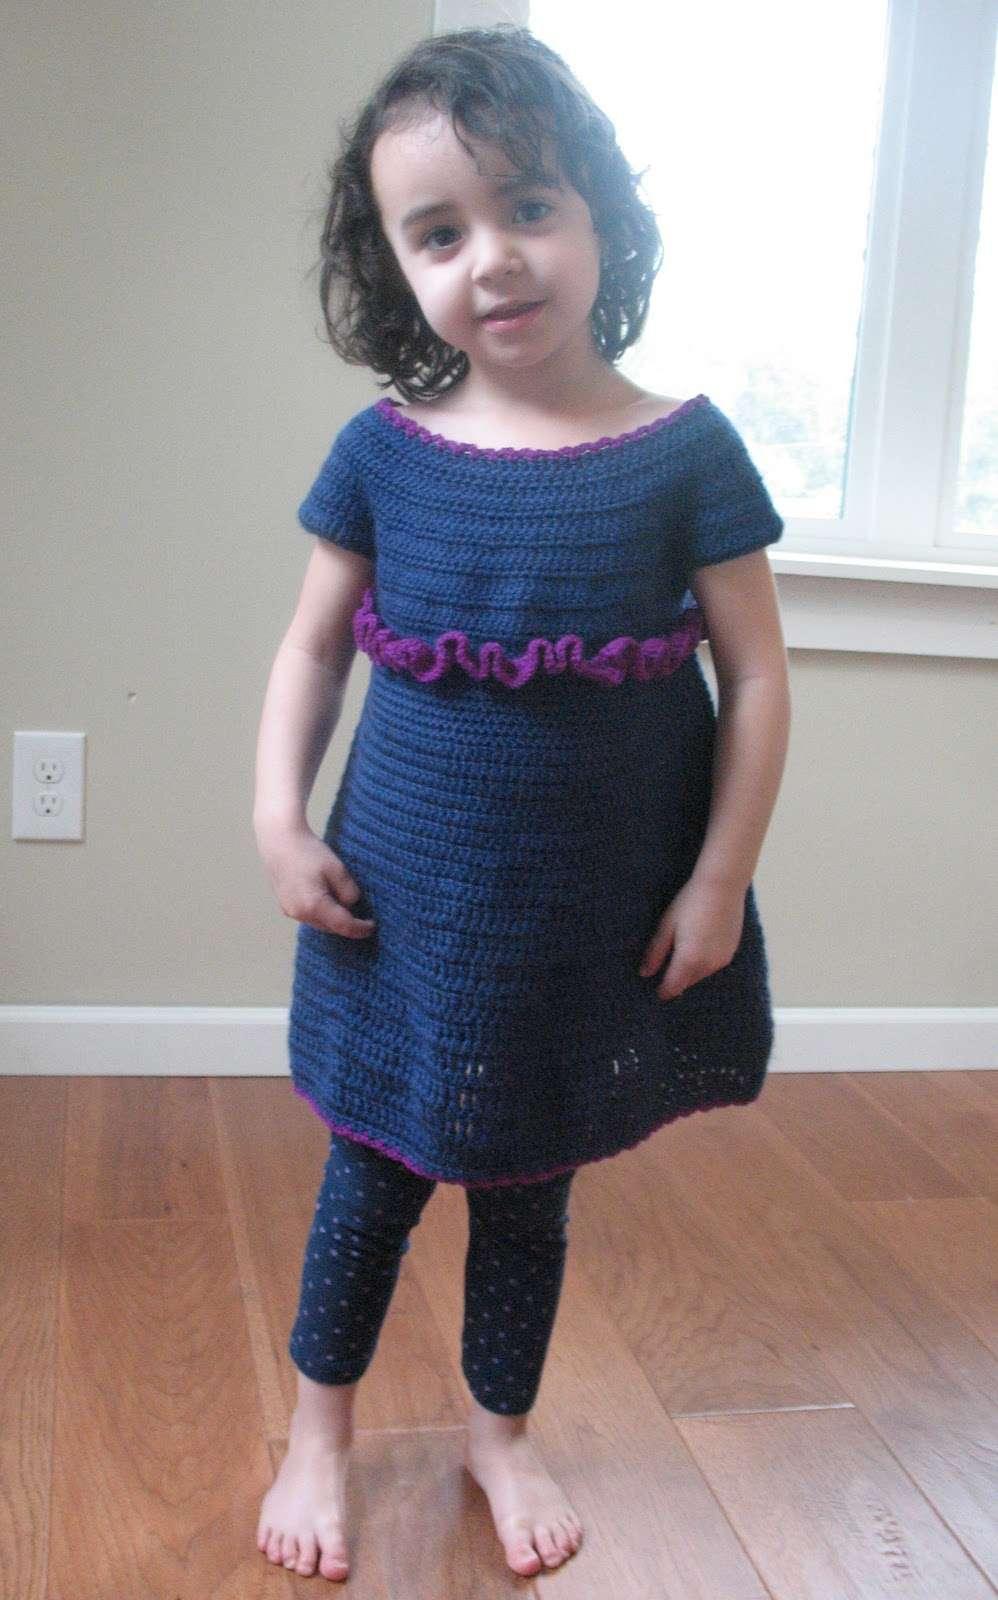 Crochet Patterns Little Girl Dresses : 15 Beautiful Free Crochet Patterns for Girls? Dresses